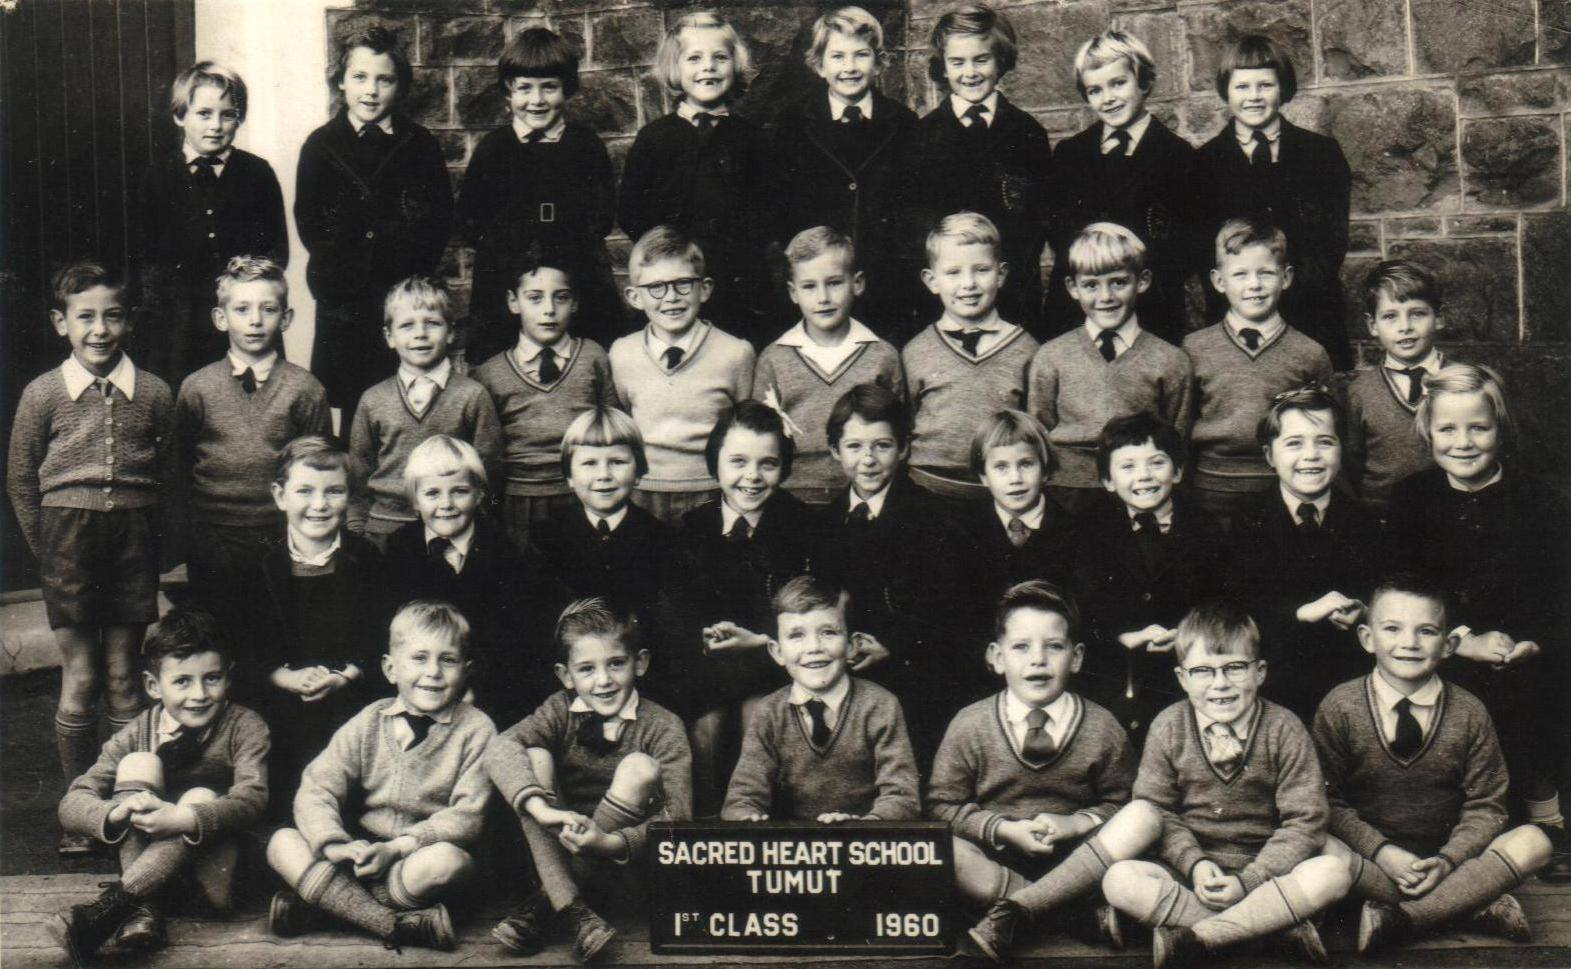 1st class at the sacred heart school 1960 lost tumut